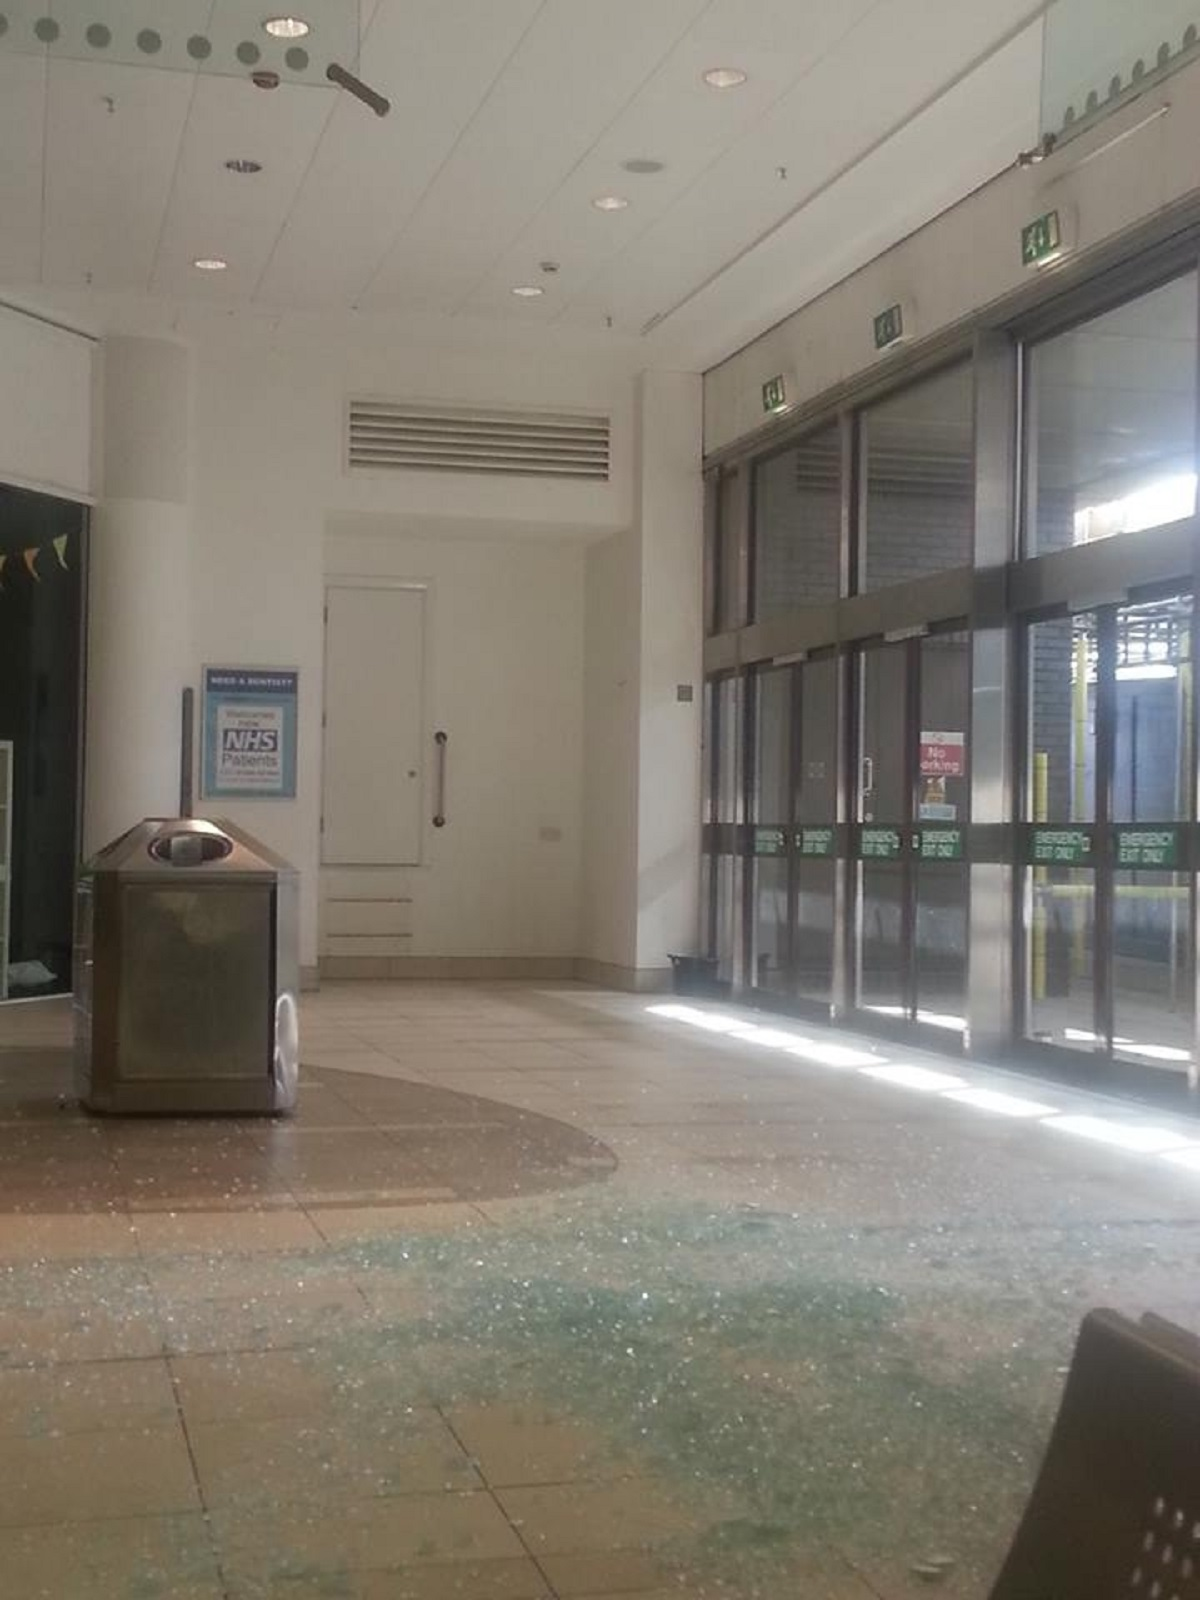 Shock - the broken glass on the Eastgate floor